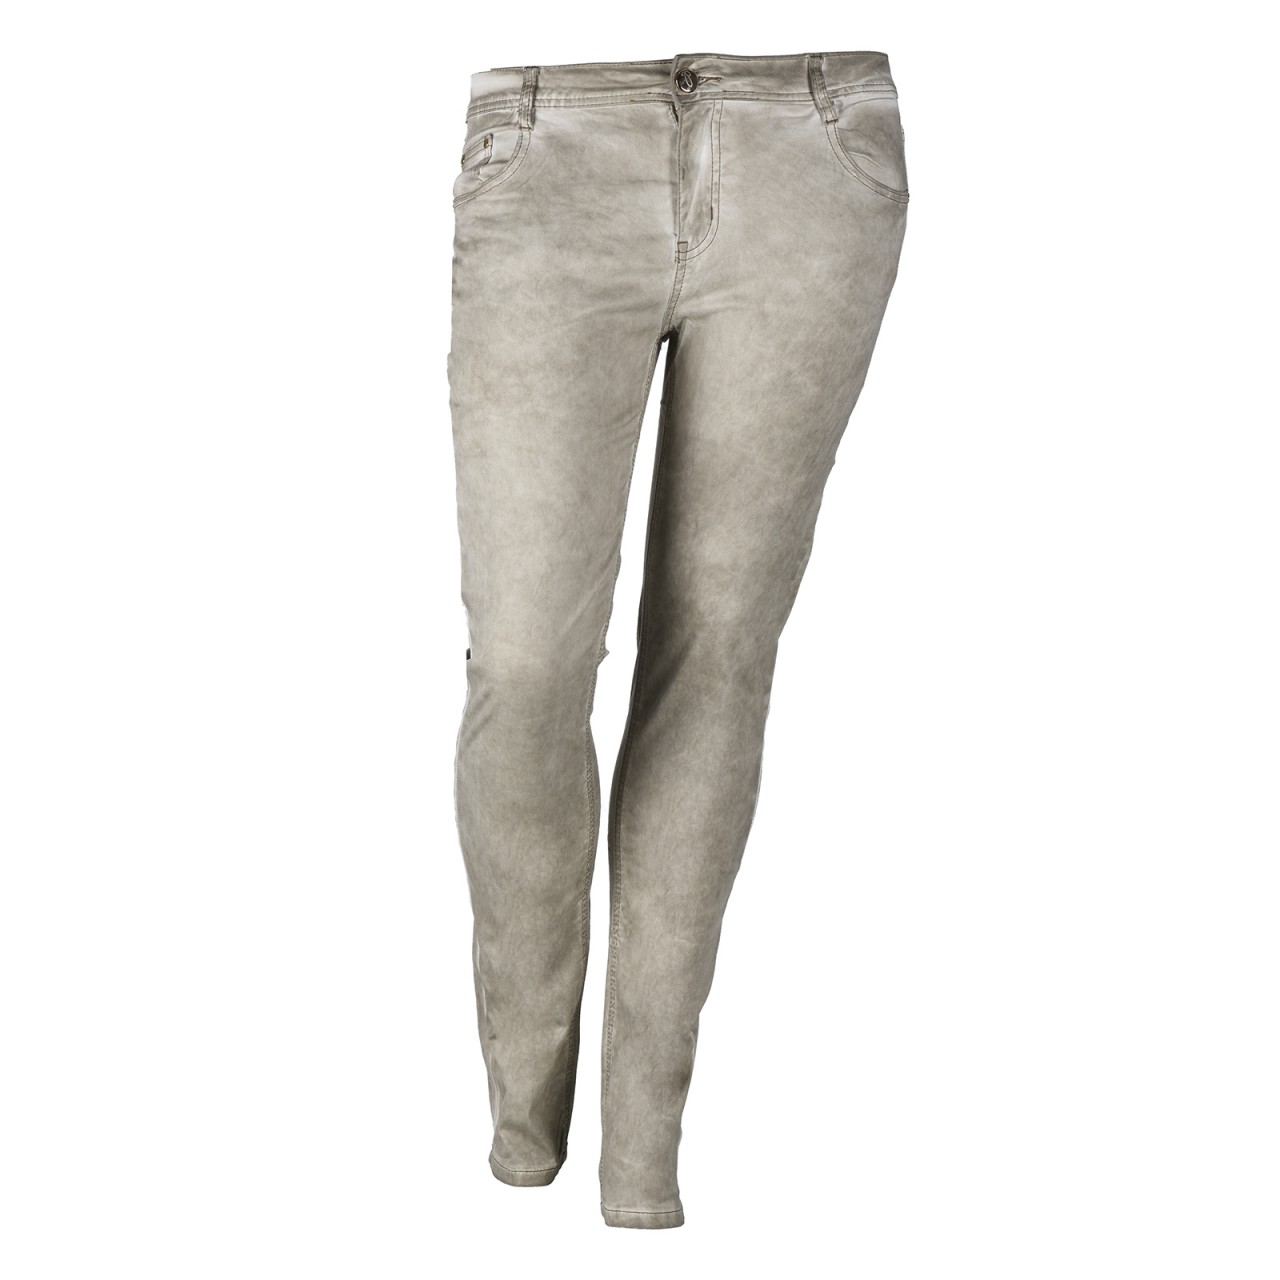 Damen Jeans Extra Slim Fit Creme